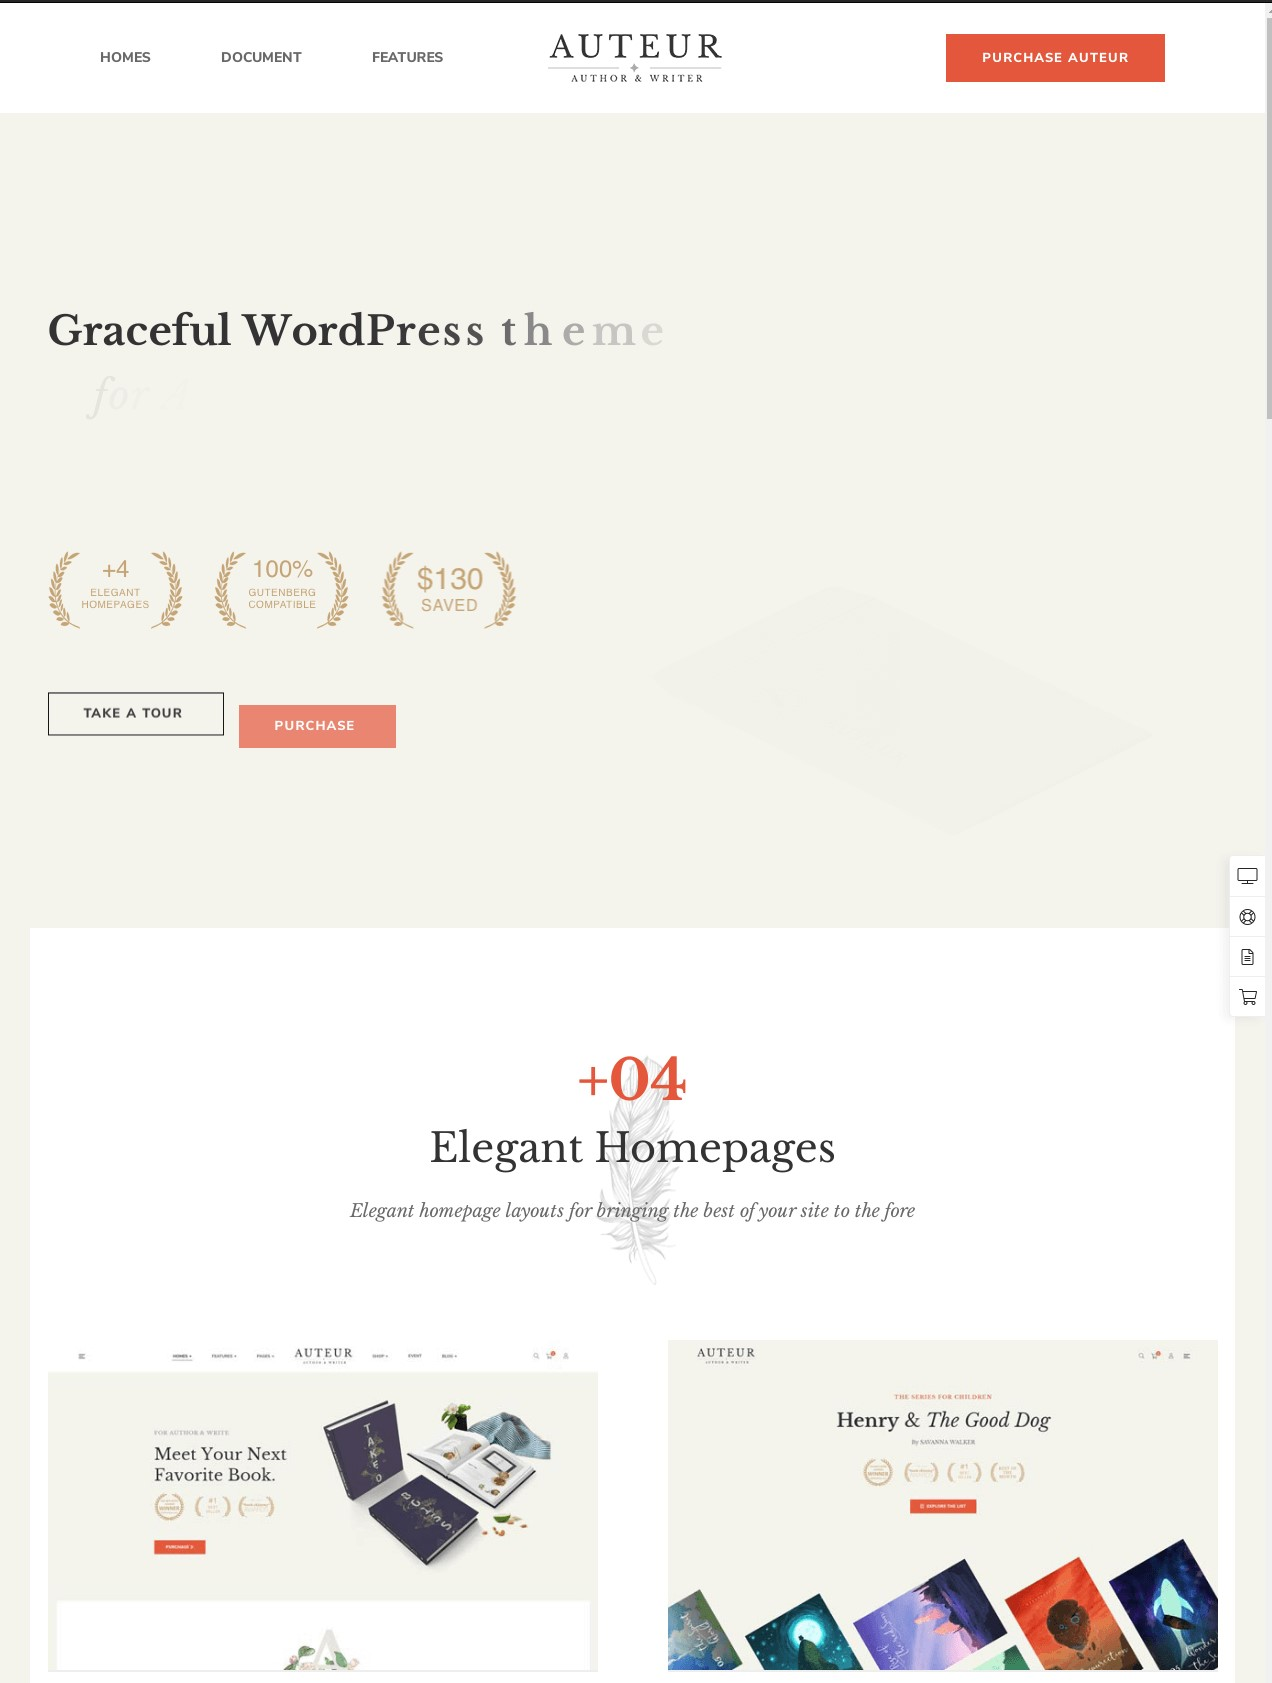 Auteur  WordPress Theme for Authors and Publishers